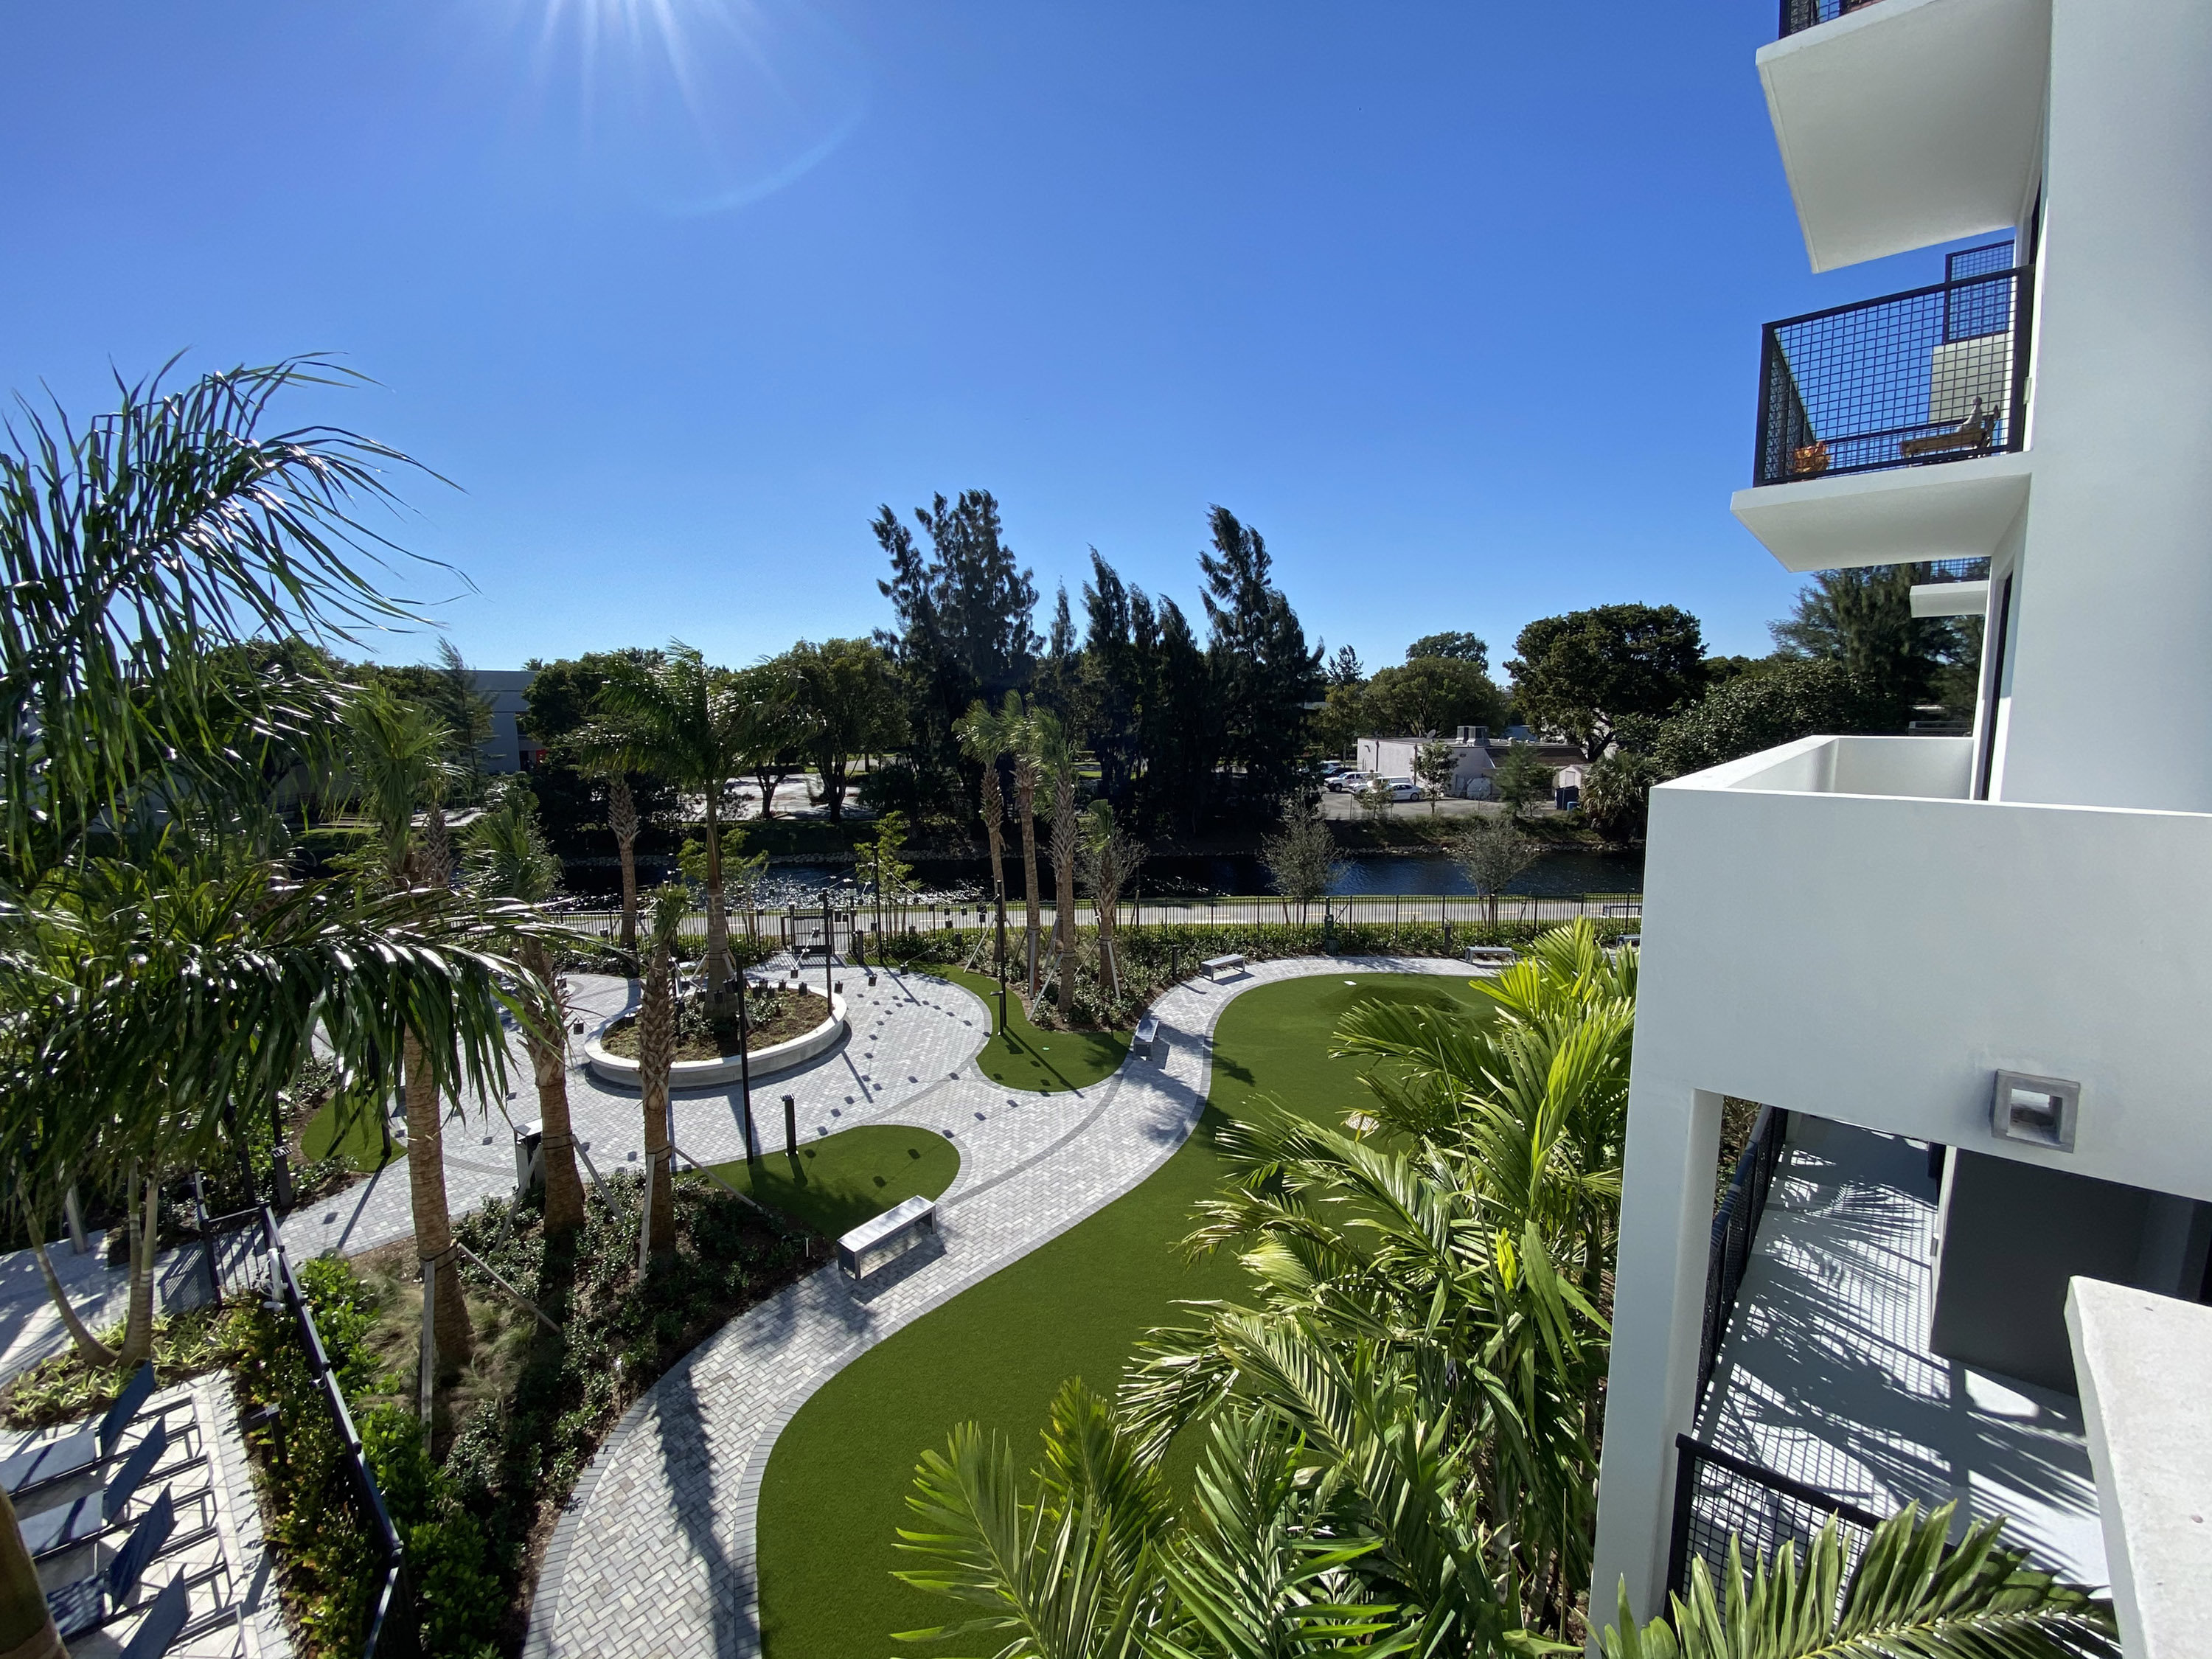 Balcony view to hillocks and Amenities